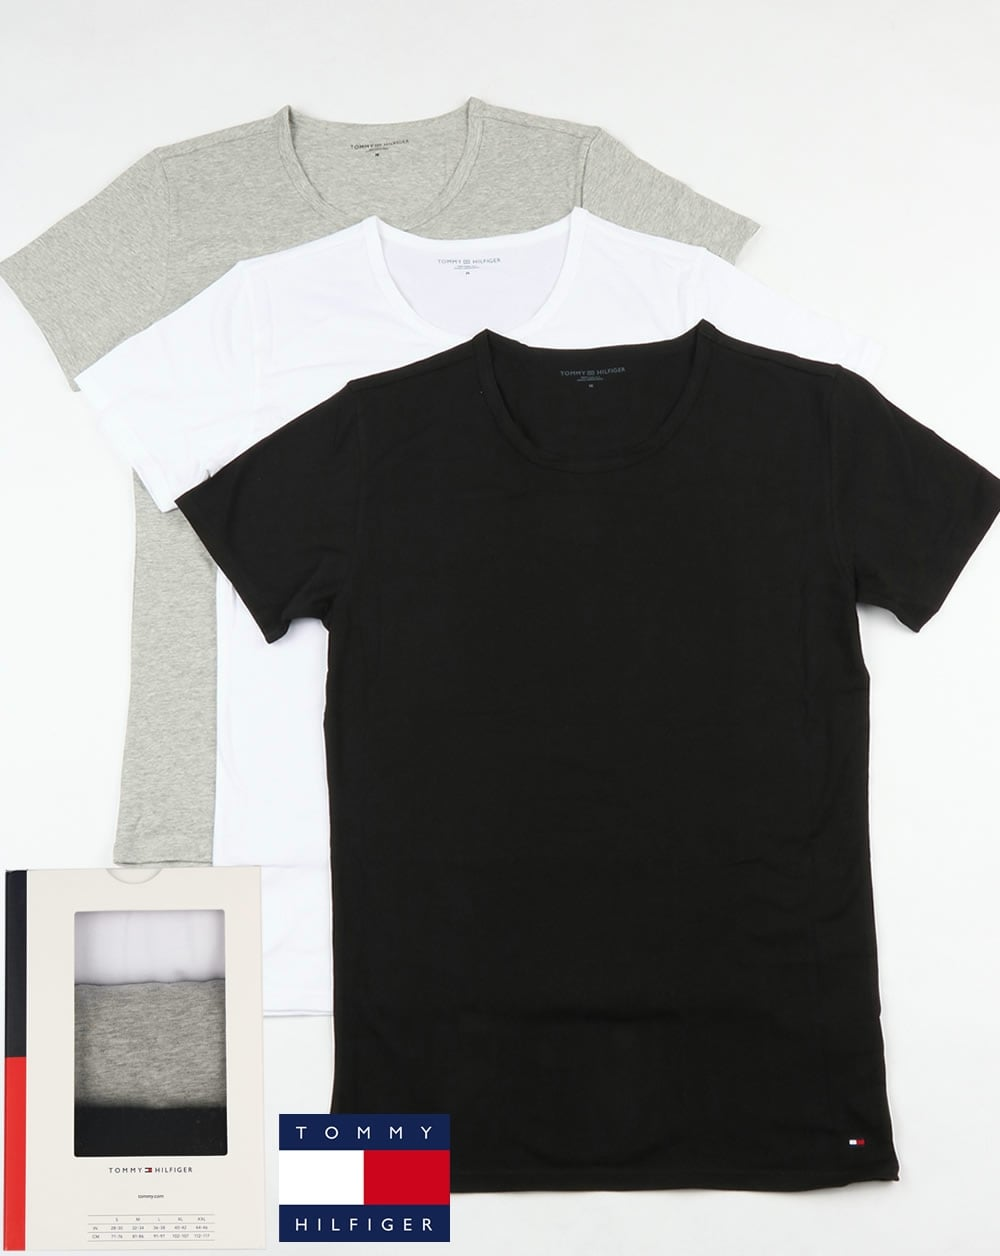 7a3edbe3 Tommy Hilfiger Jeans Tommy Hilfiger Premium Essentials 3 Pack T Shirts  Black/White/Grey